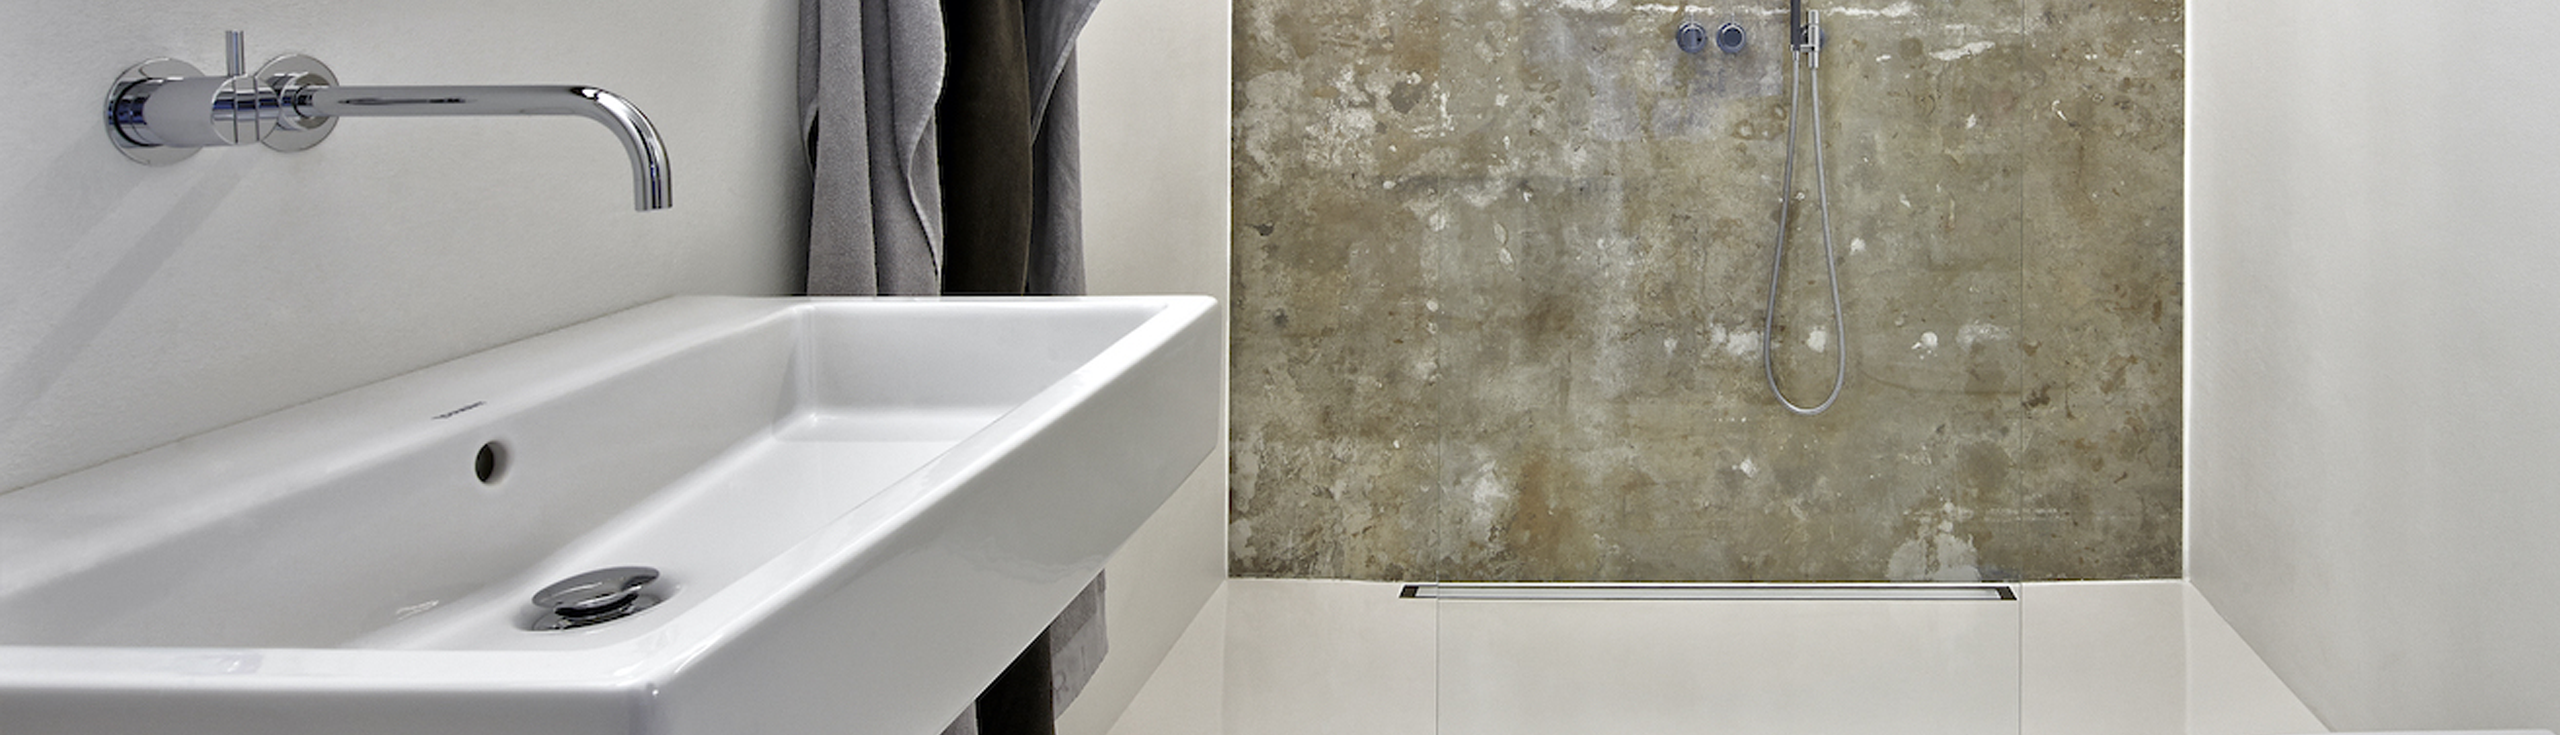 limescale cleaning tips for the bathroom wetroom